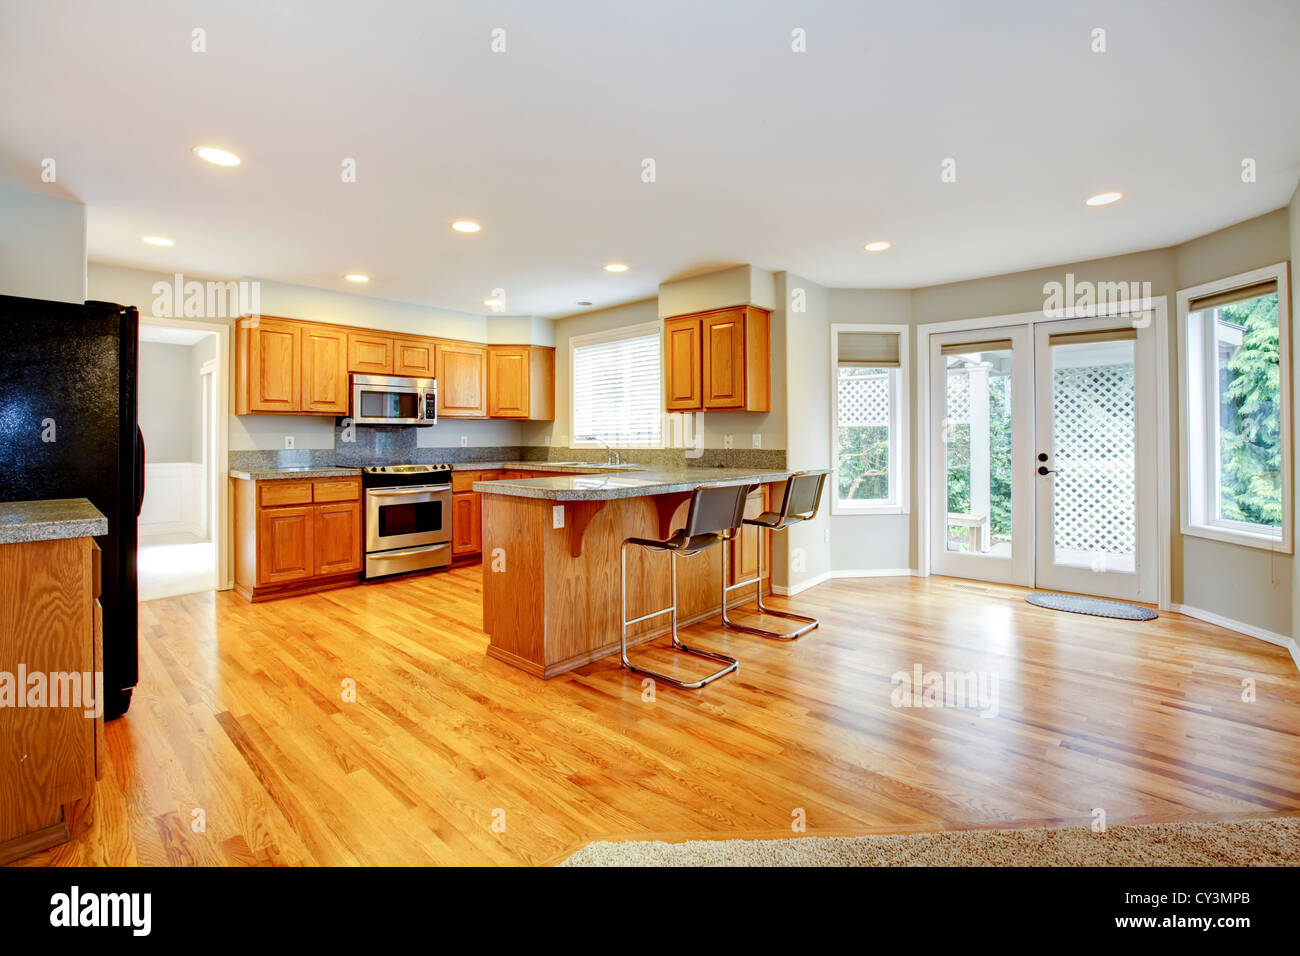 Large empty open kitchen with living room with balcony doors and ...